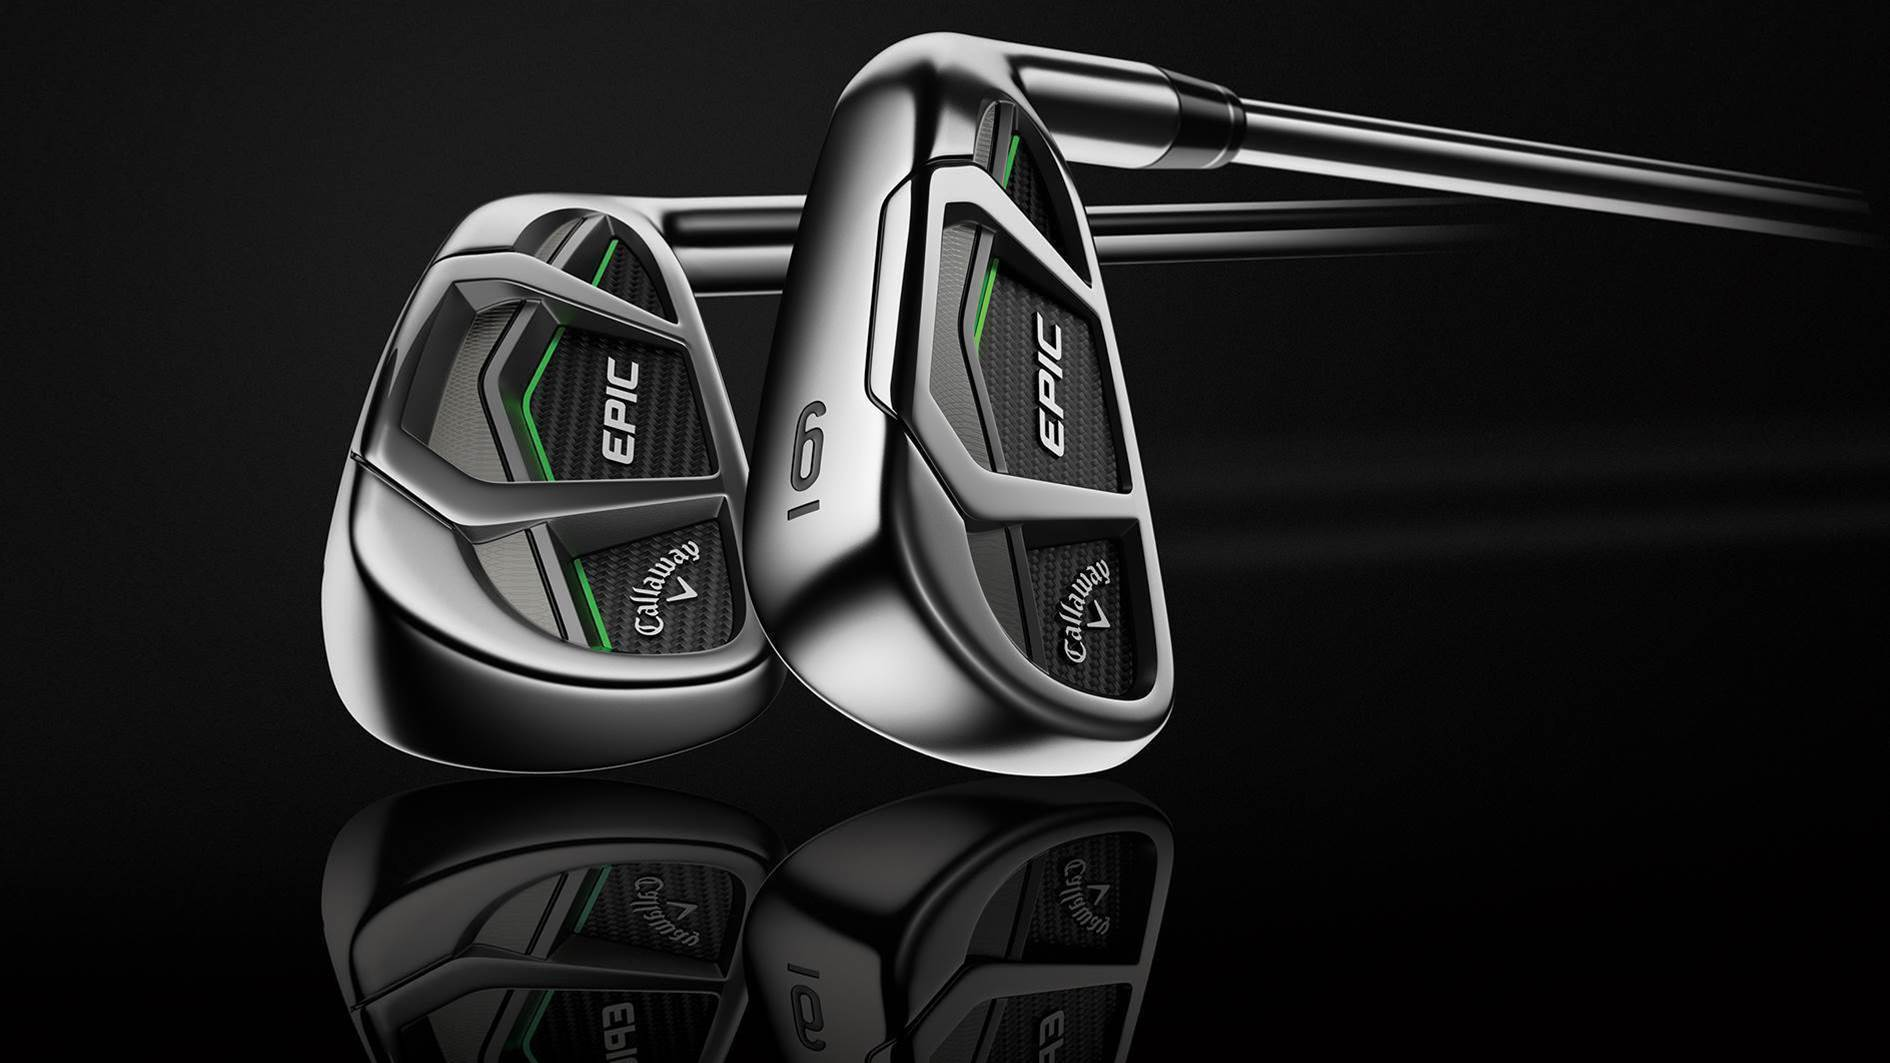 New Callaway irons & hybrids are Epic